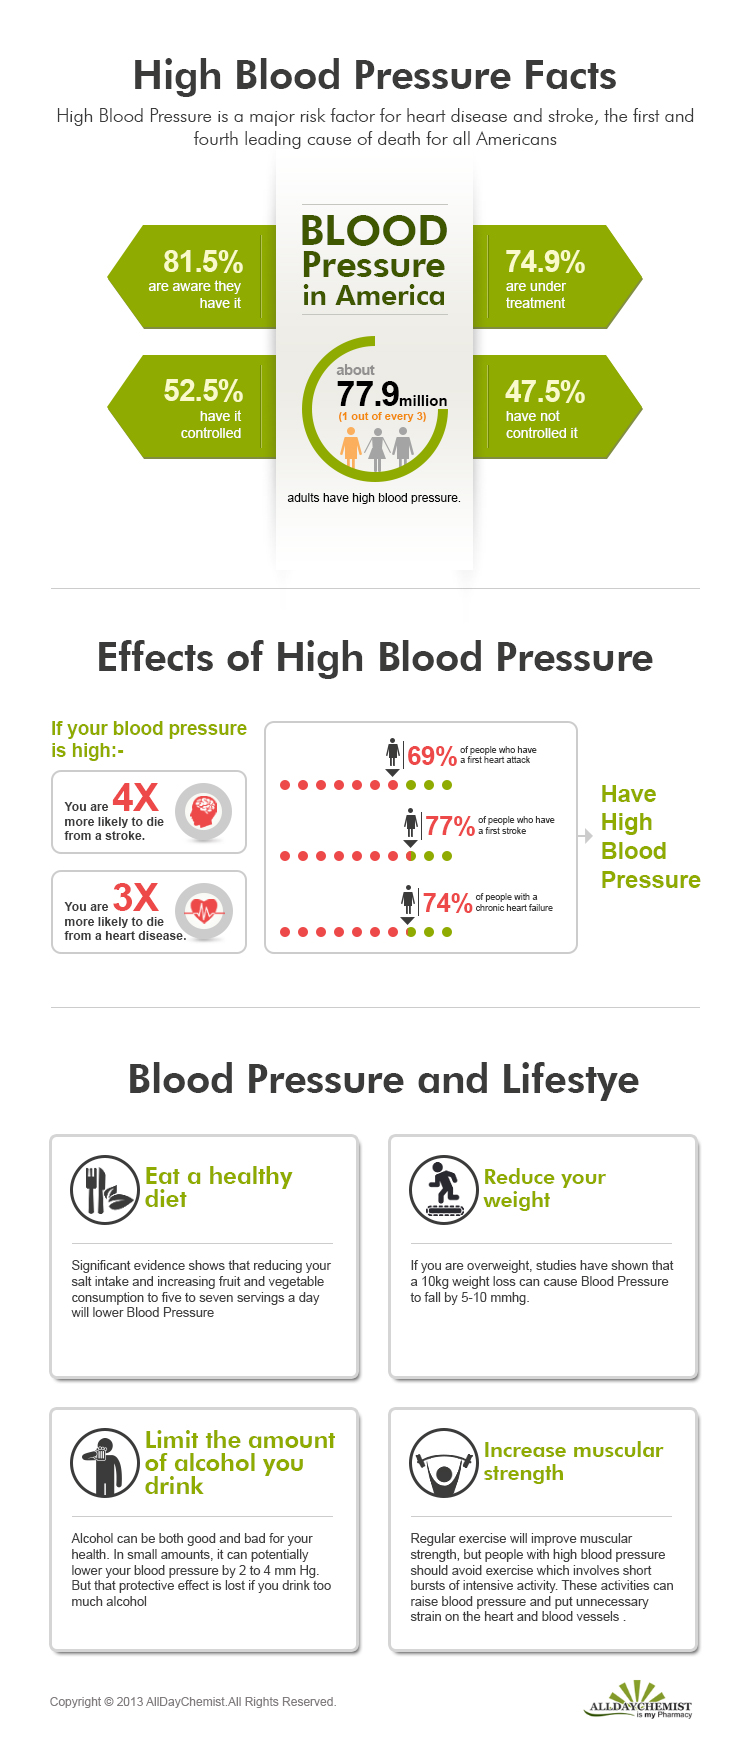 High Blood Pressure Facts